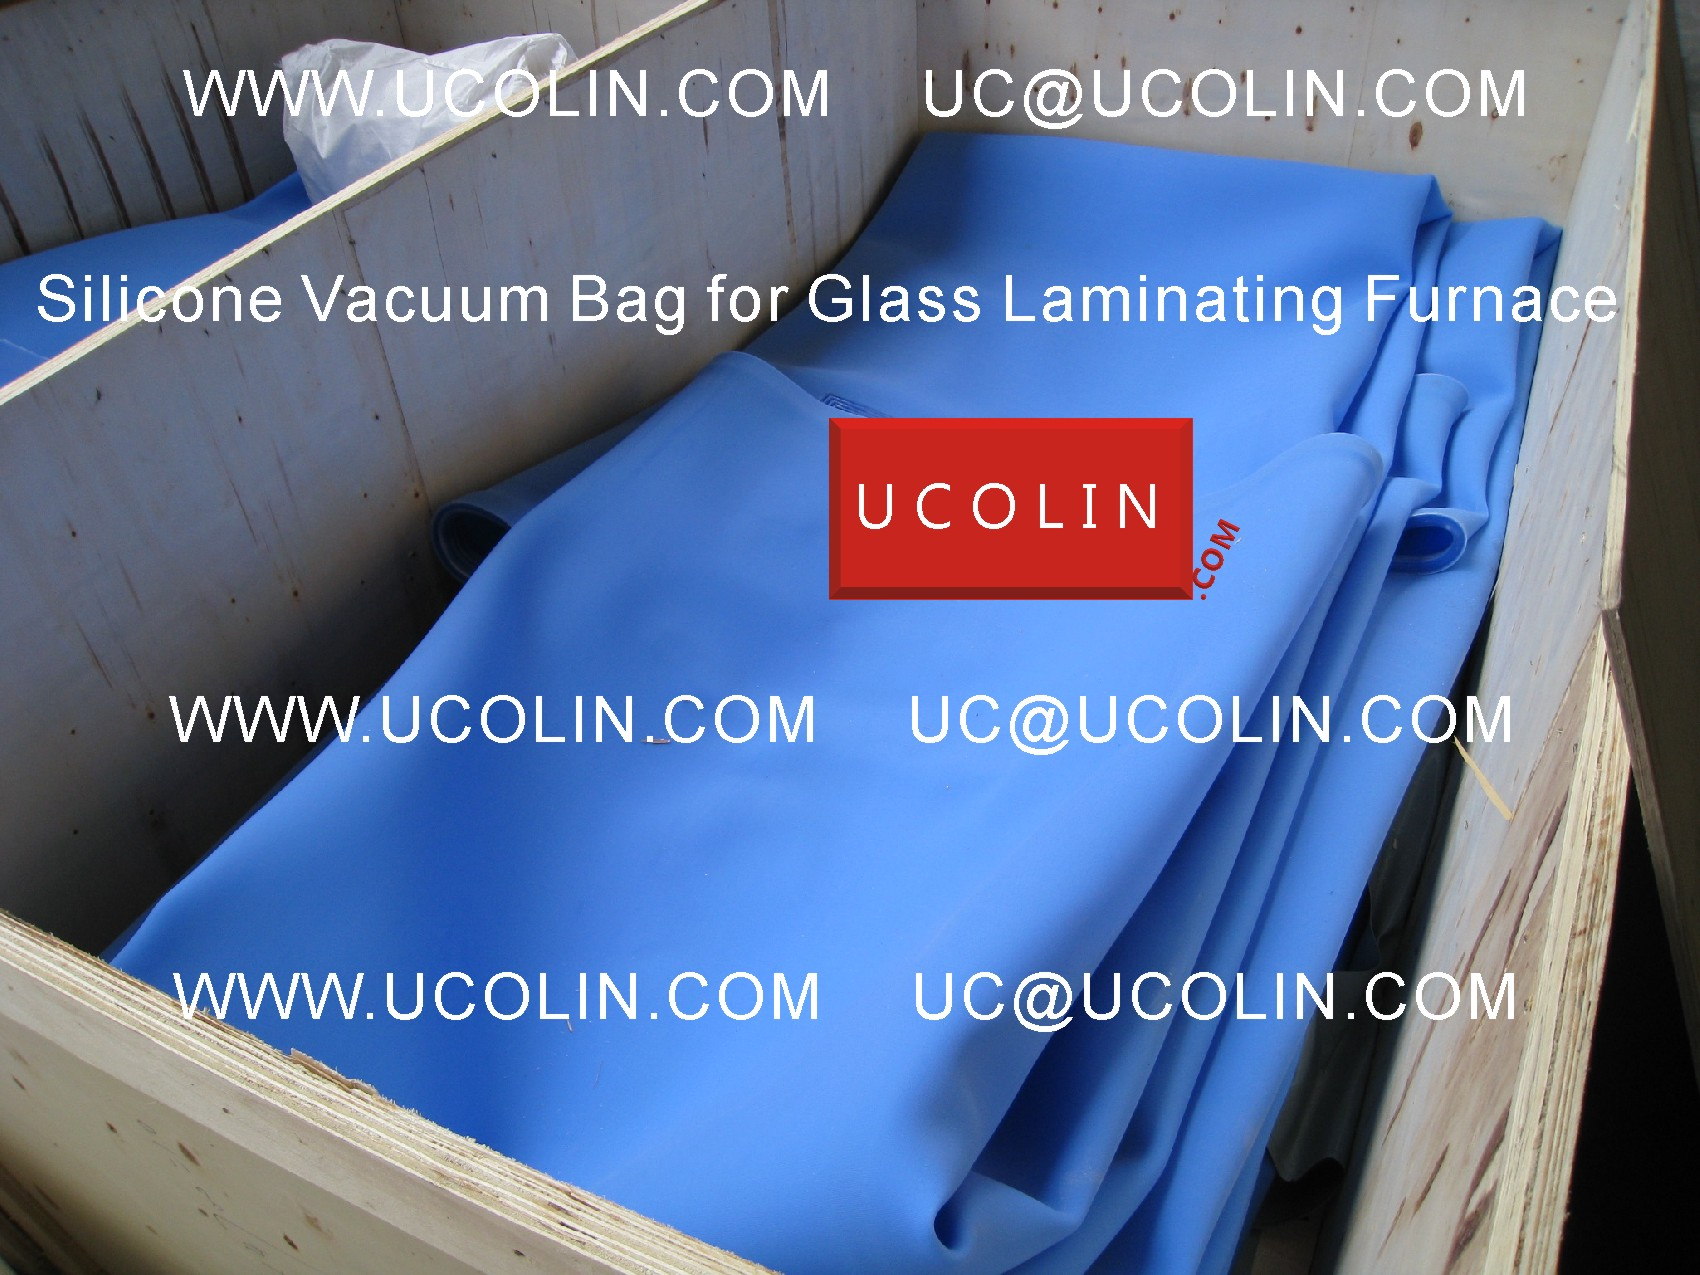 08 Producing of Silicone Vacuum Bag for Glass Laminating Furnace